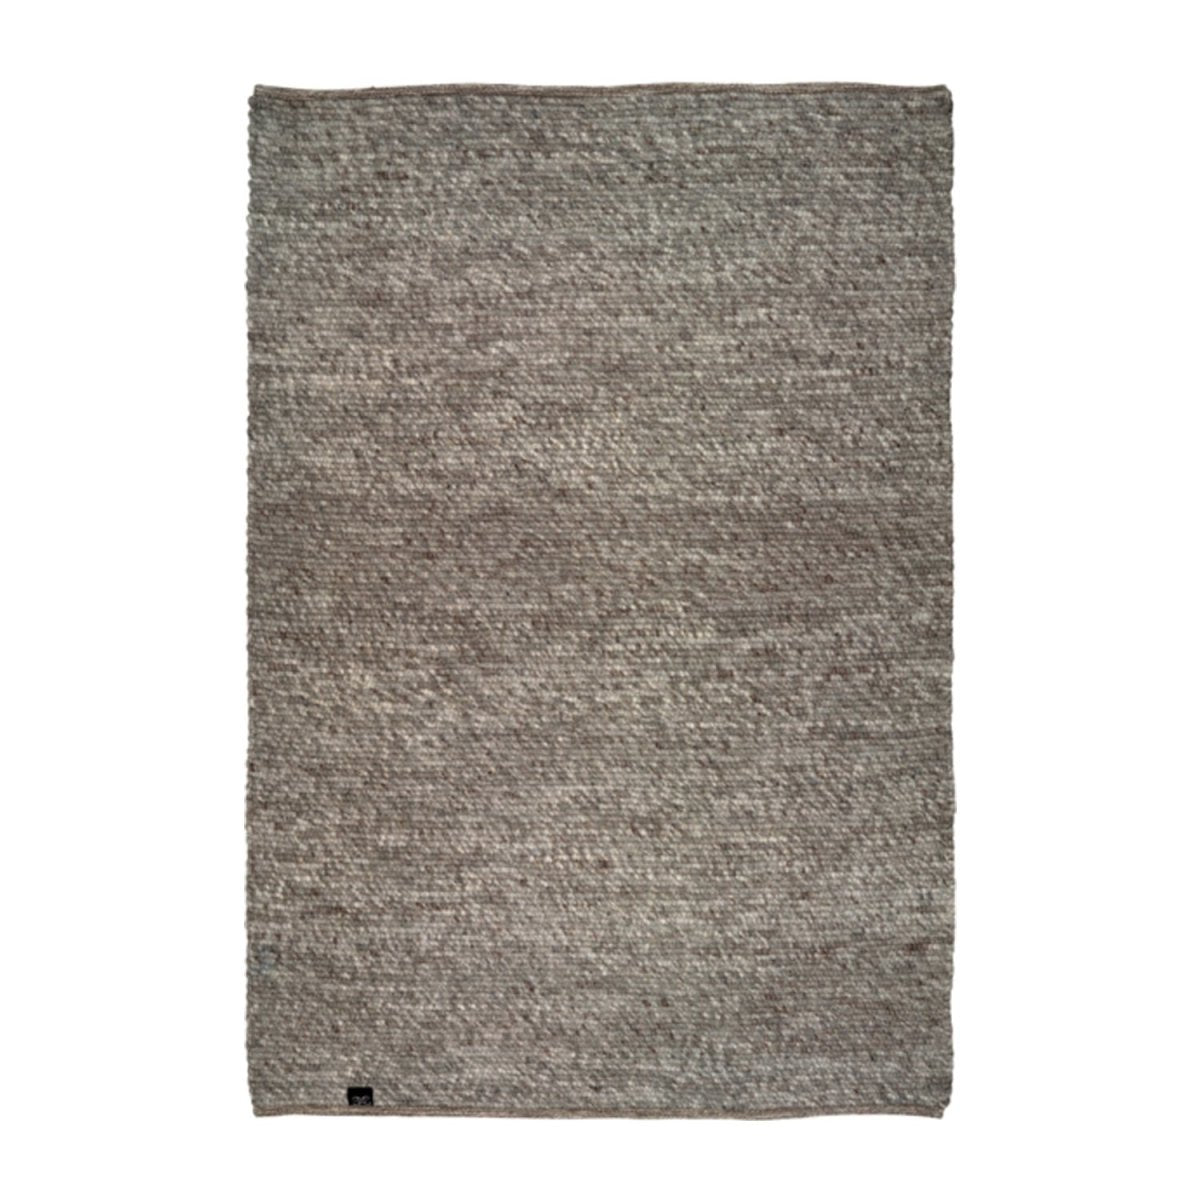 Matta Merino från Classic Collection, Grey - Posh Living